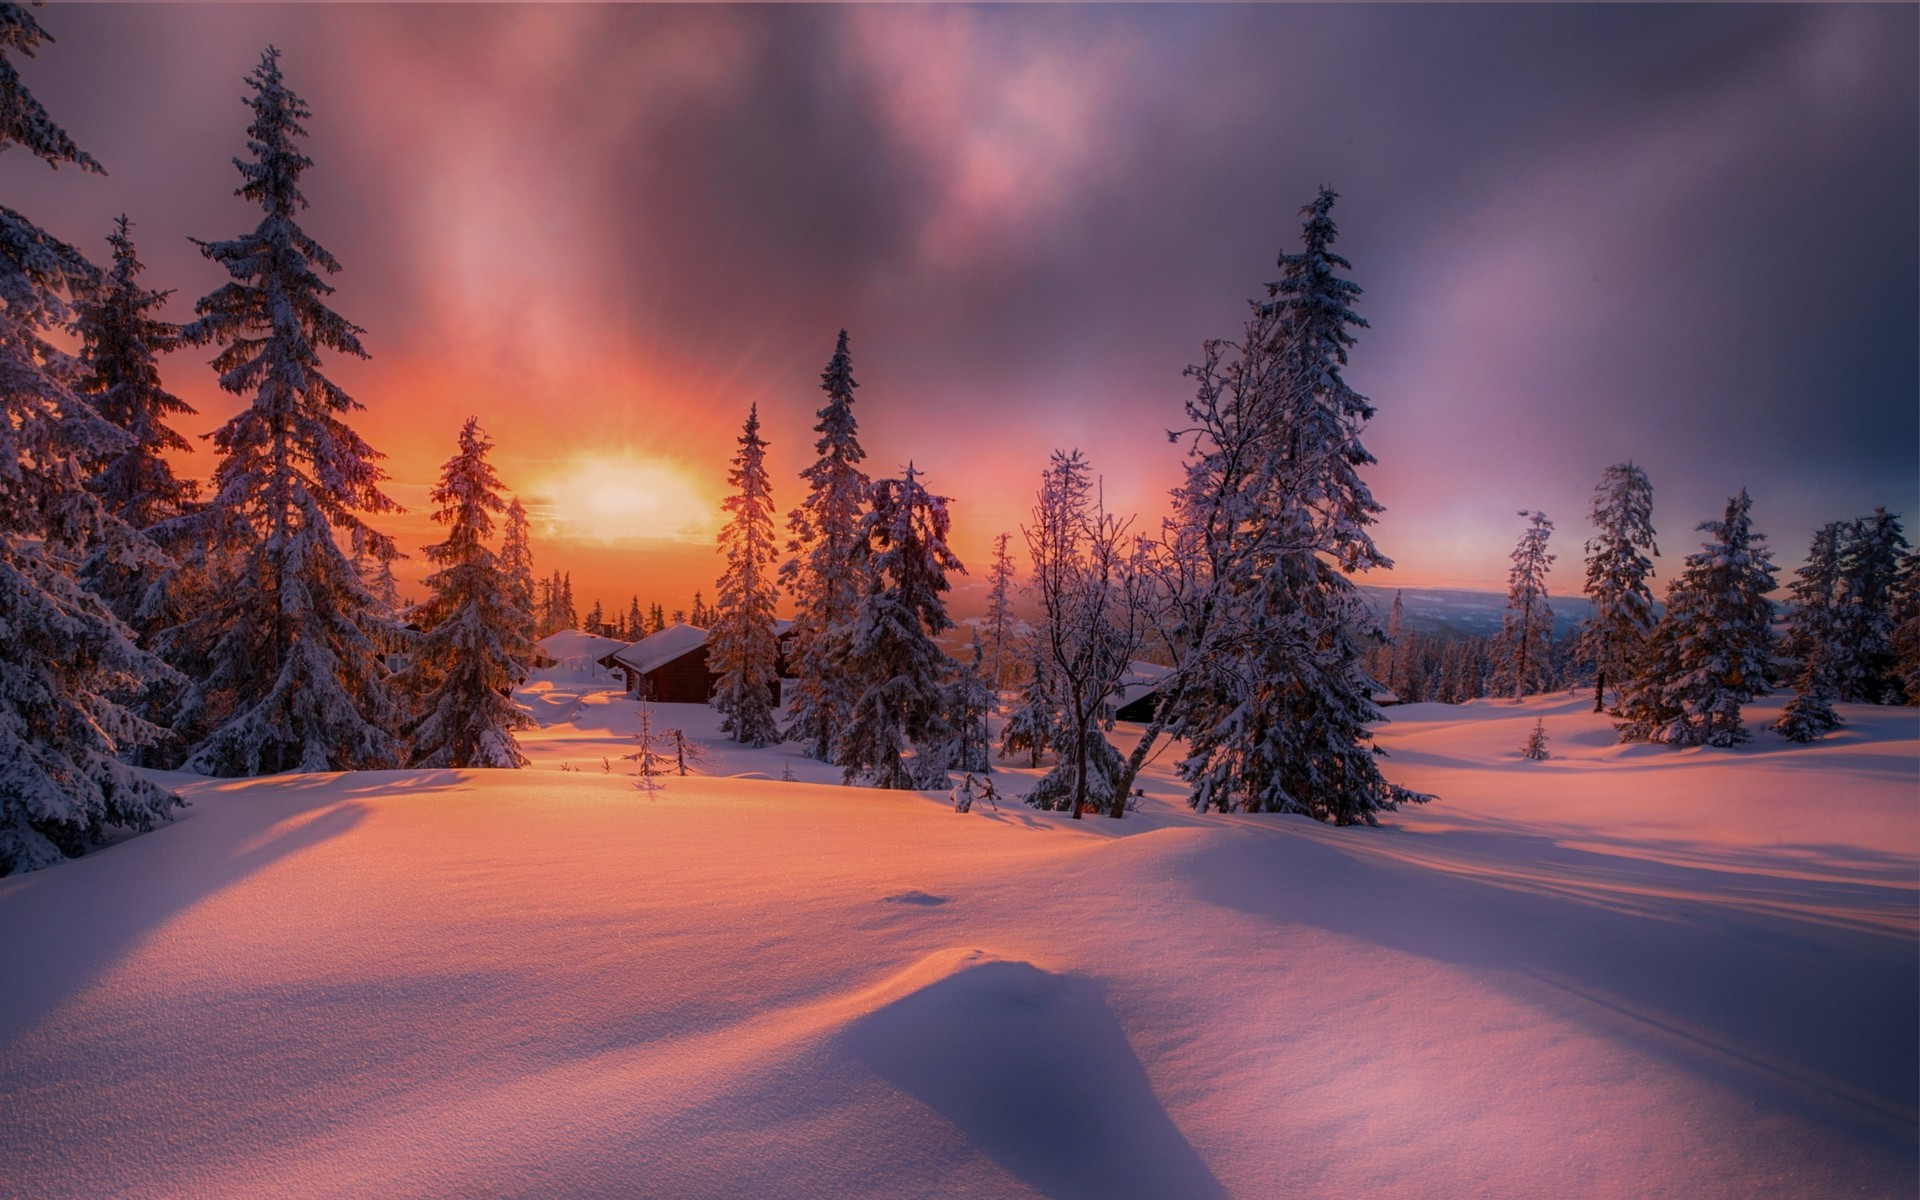 Full Hd Wallpapers Sunsets Nature Landscape Forest Sunset Cottage Winter Snow